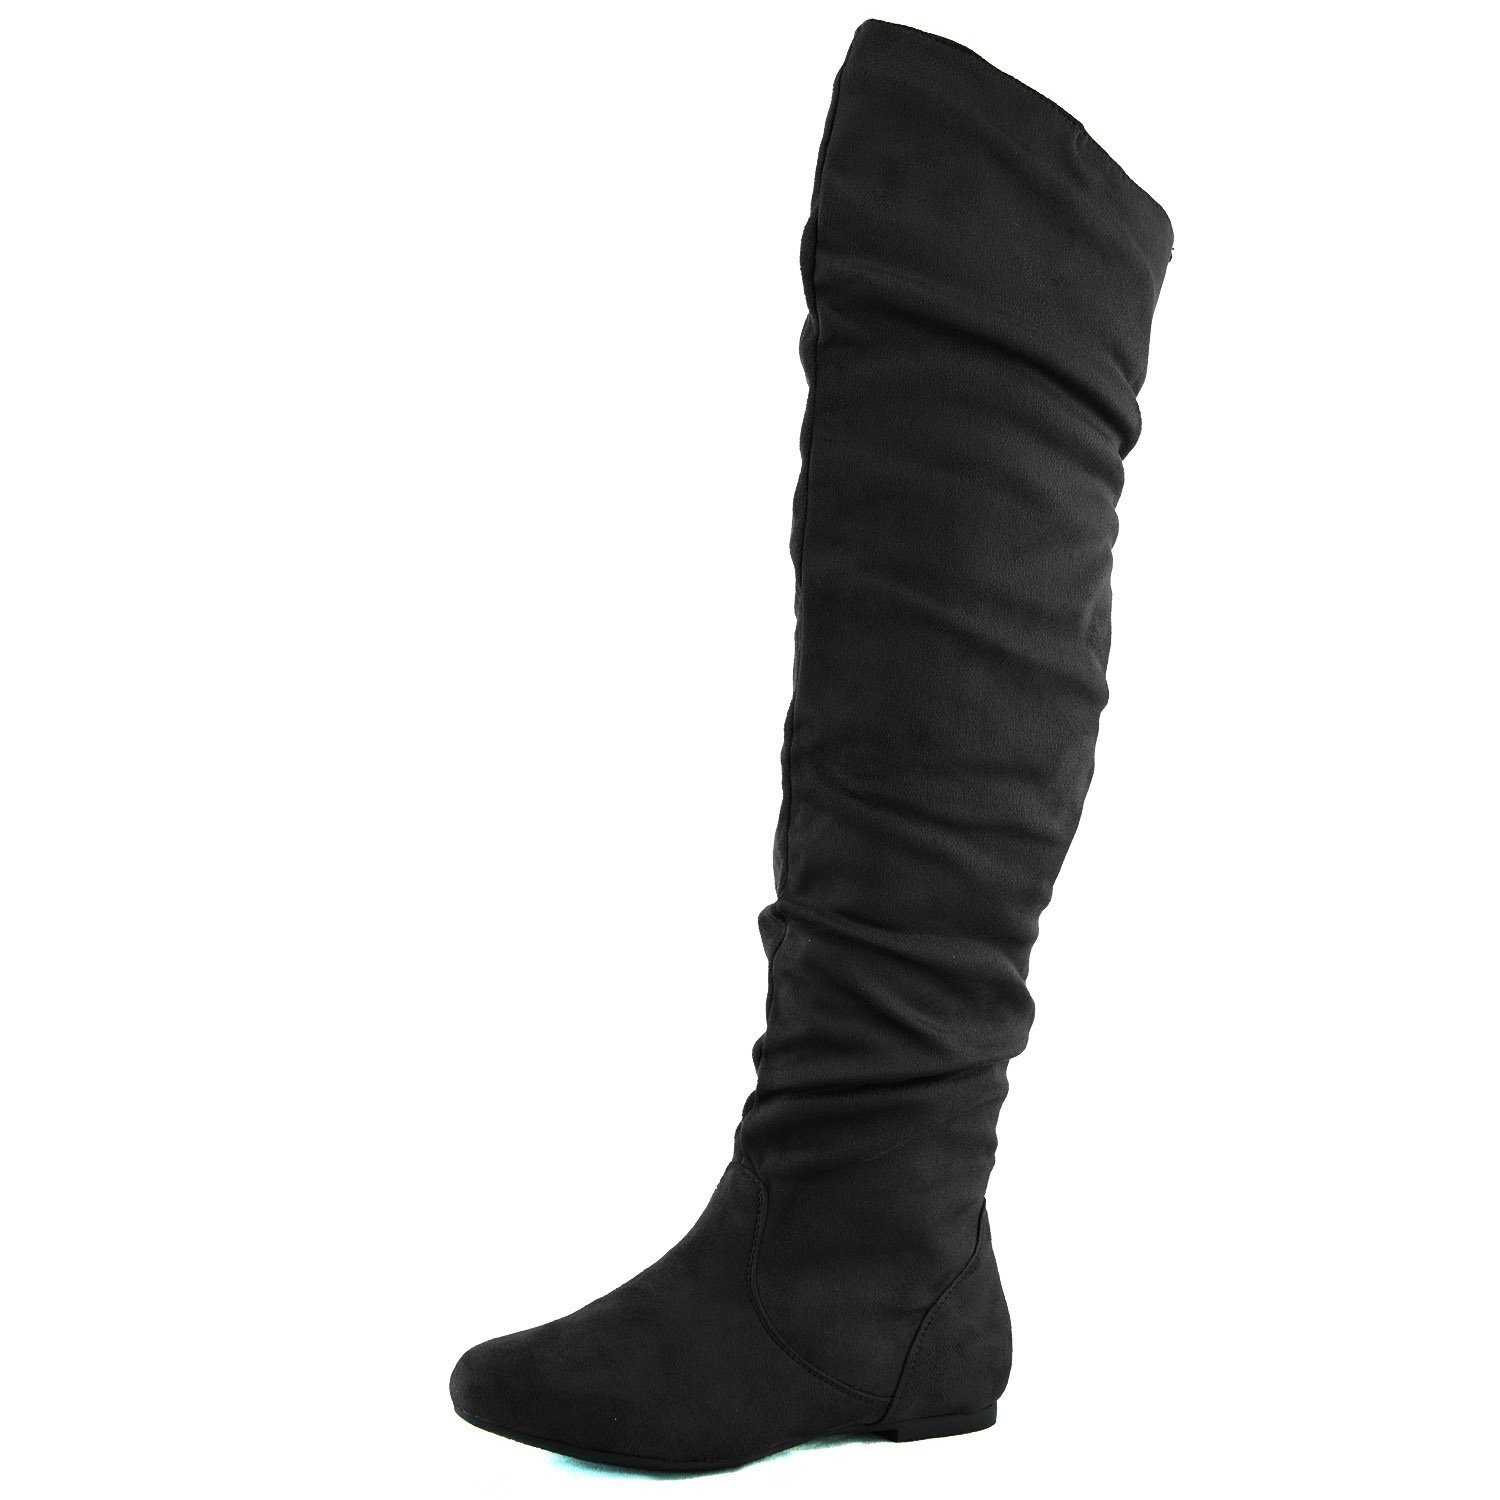 Women's Over The Knee Slouchy Flat Boots Knee High Low Heel Shoes Thigh High Boots Black Suede 8